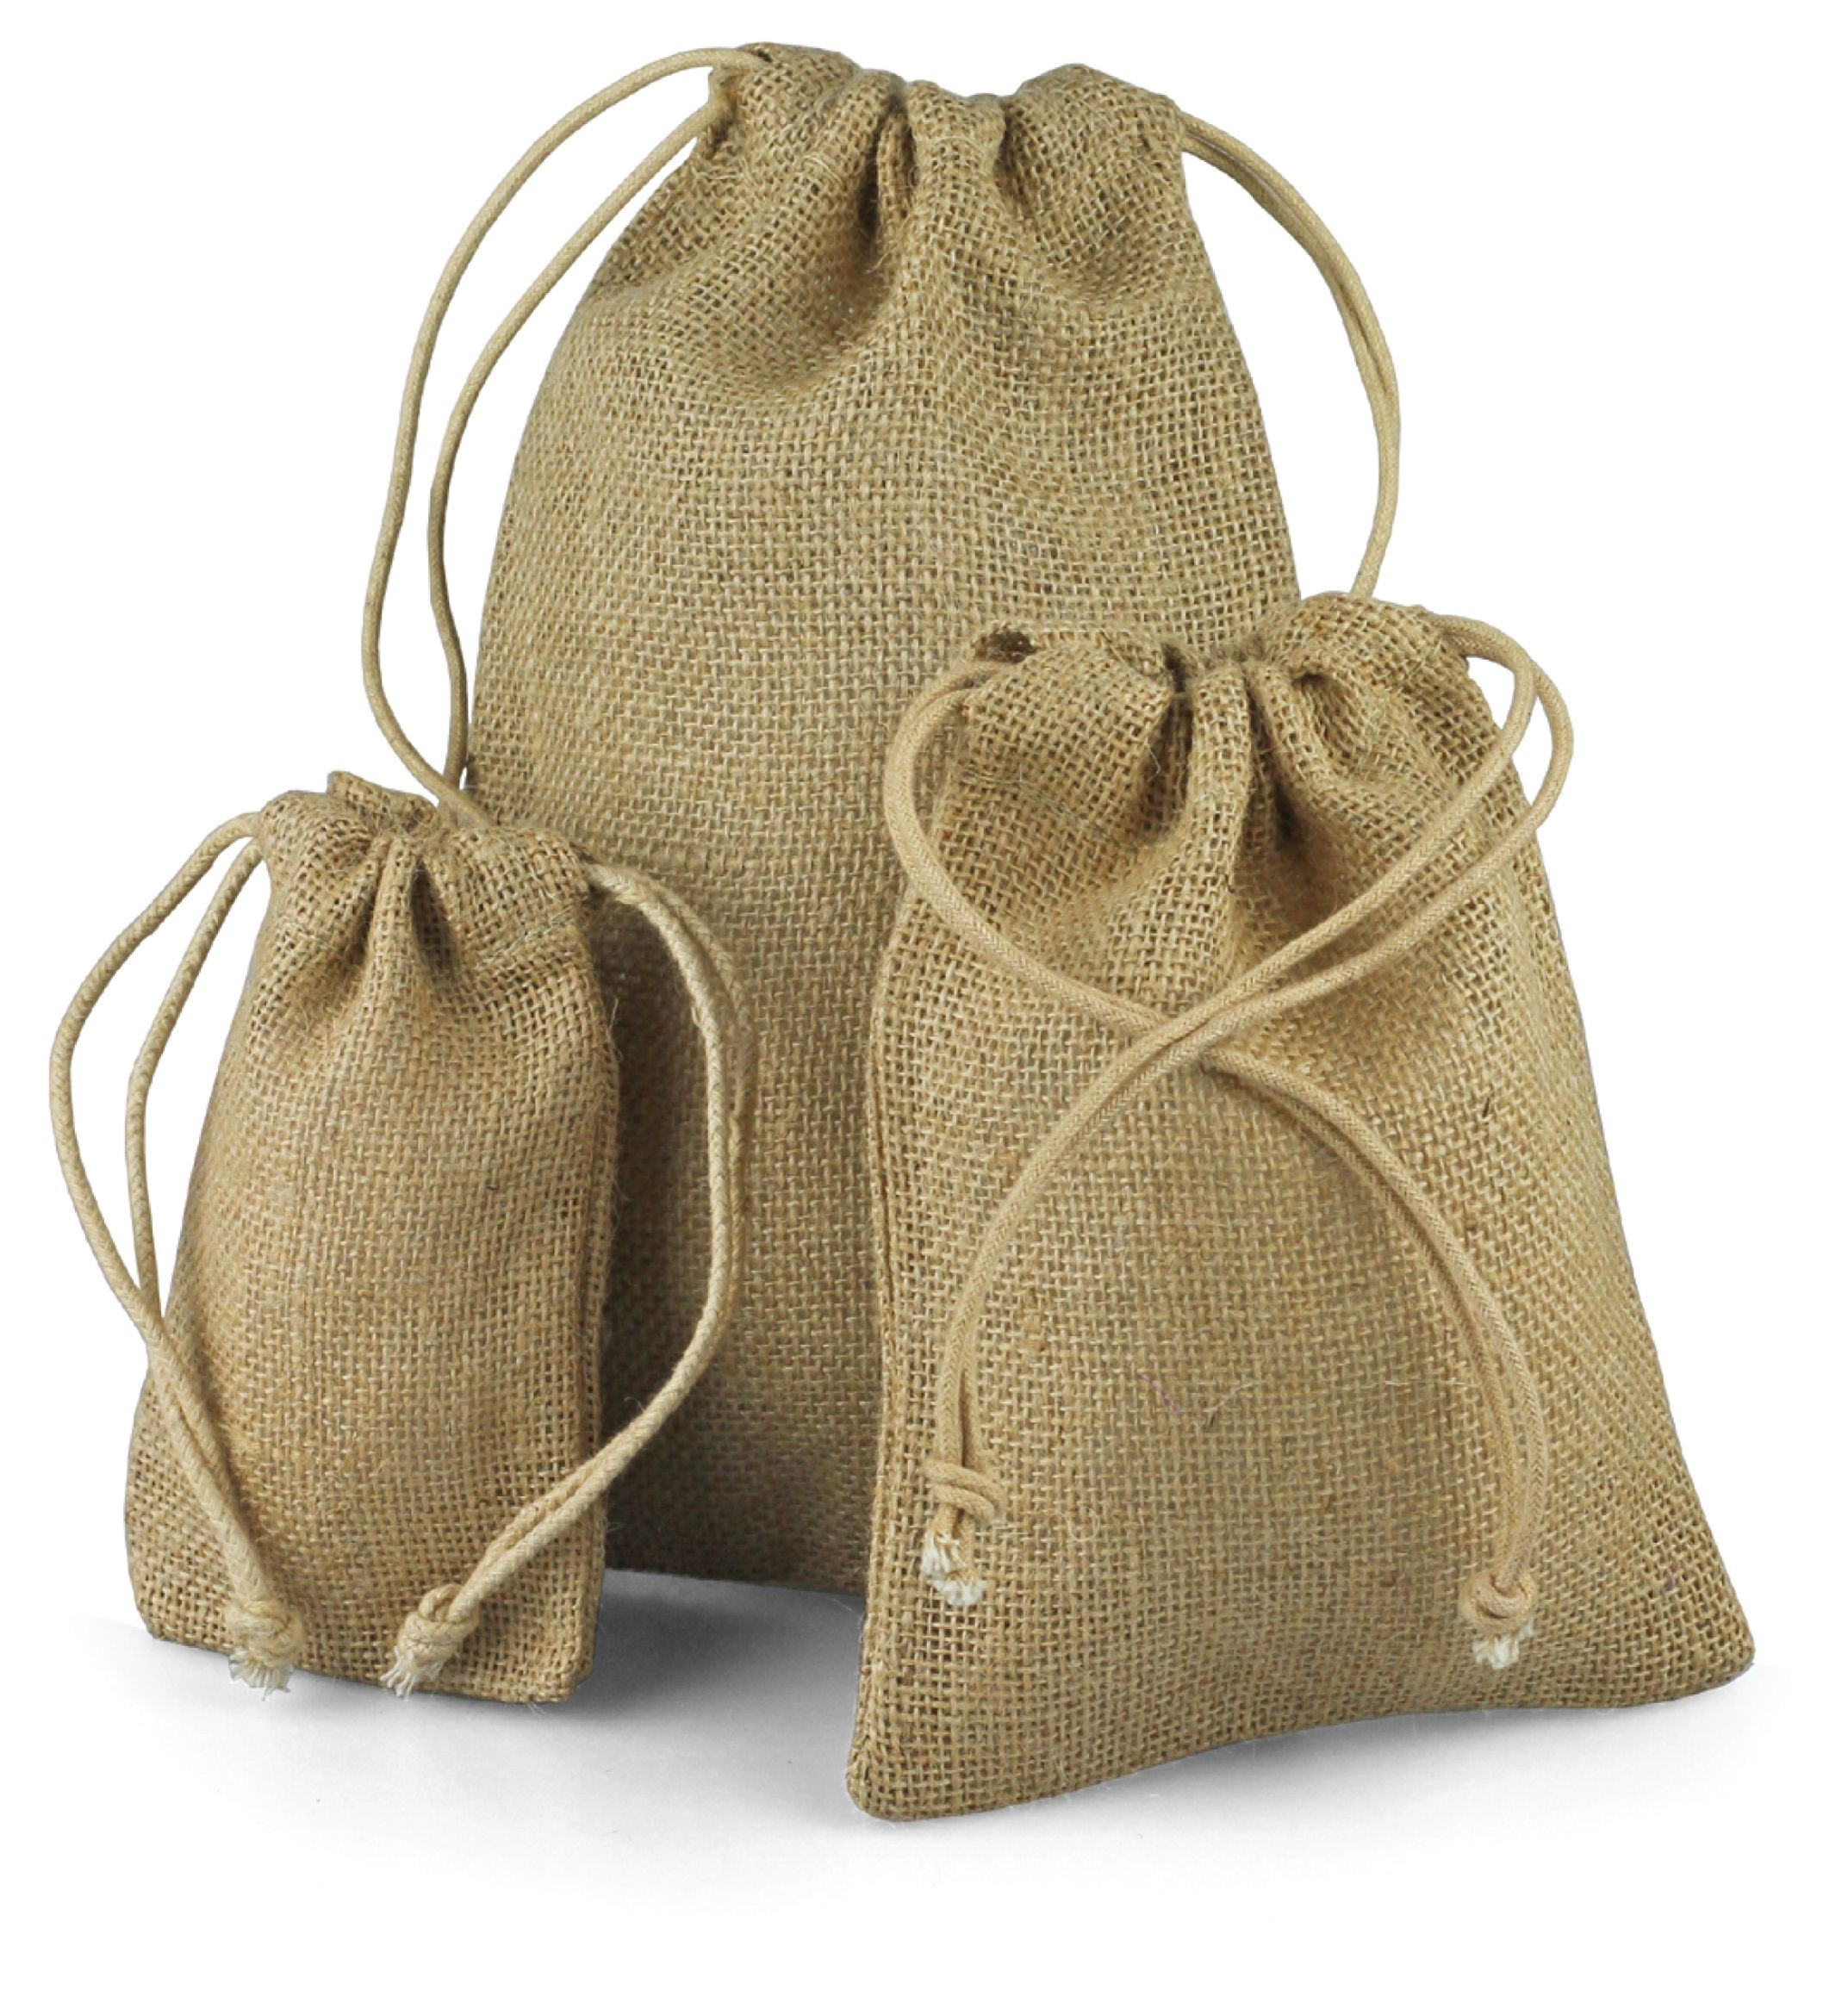 Wholesale Burlap Bags Sacks For Sale Very Inexpensive All Kinds Of Sizes